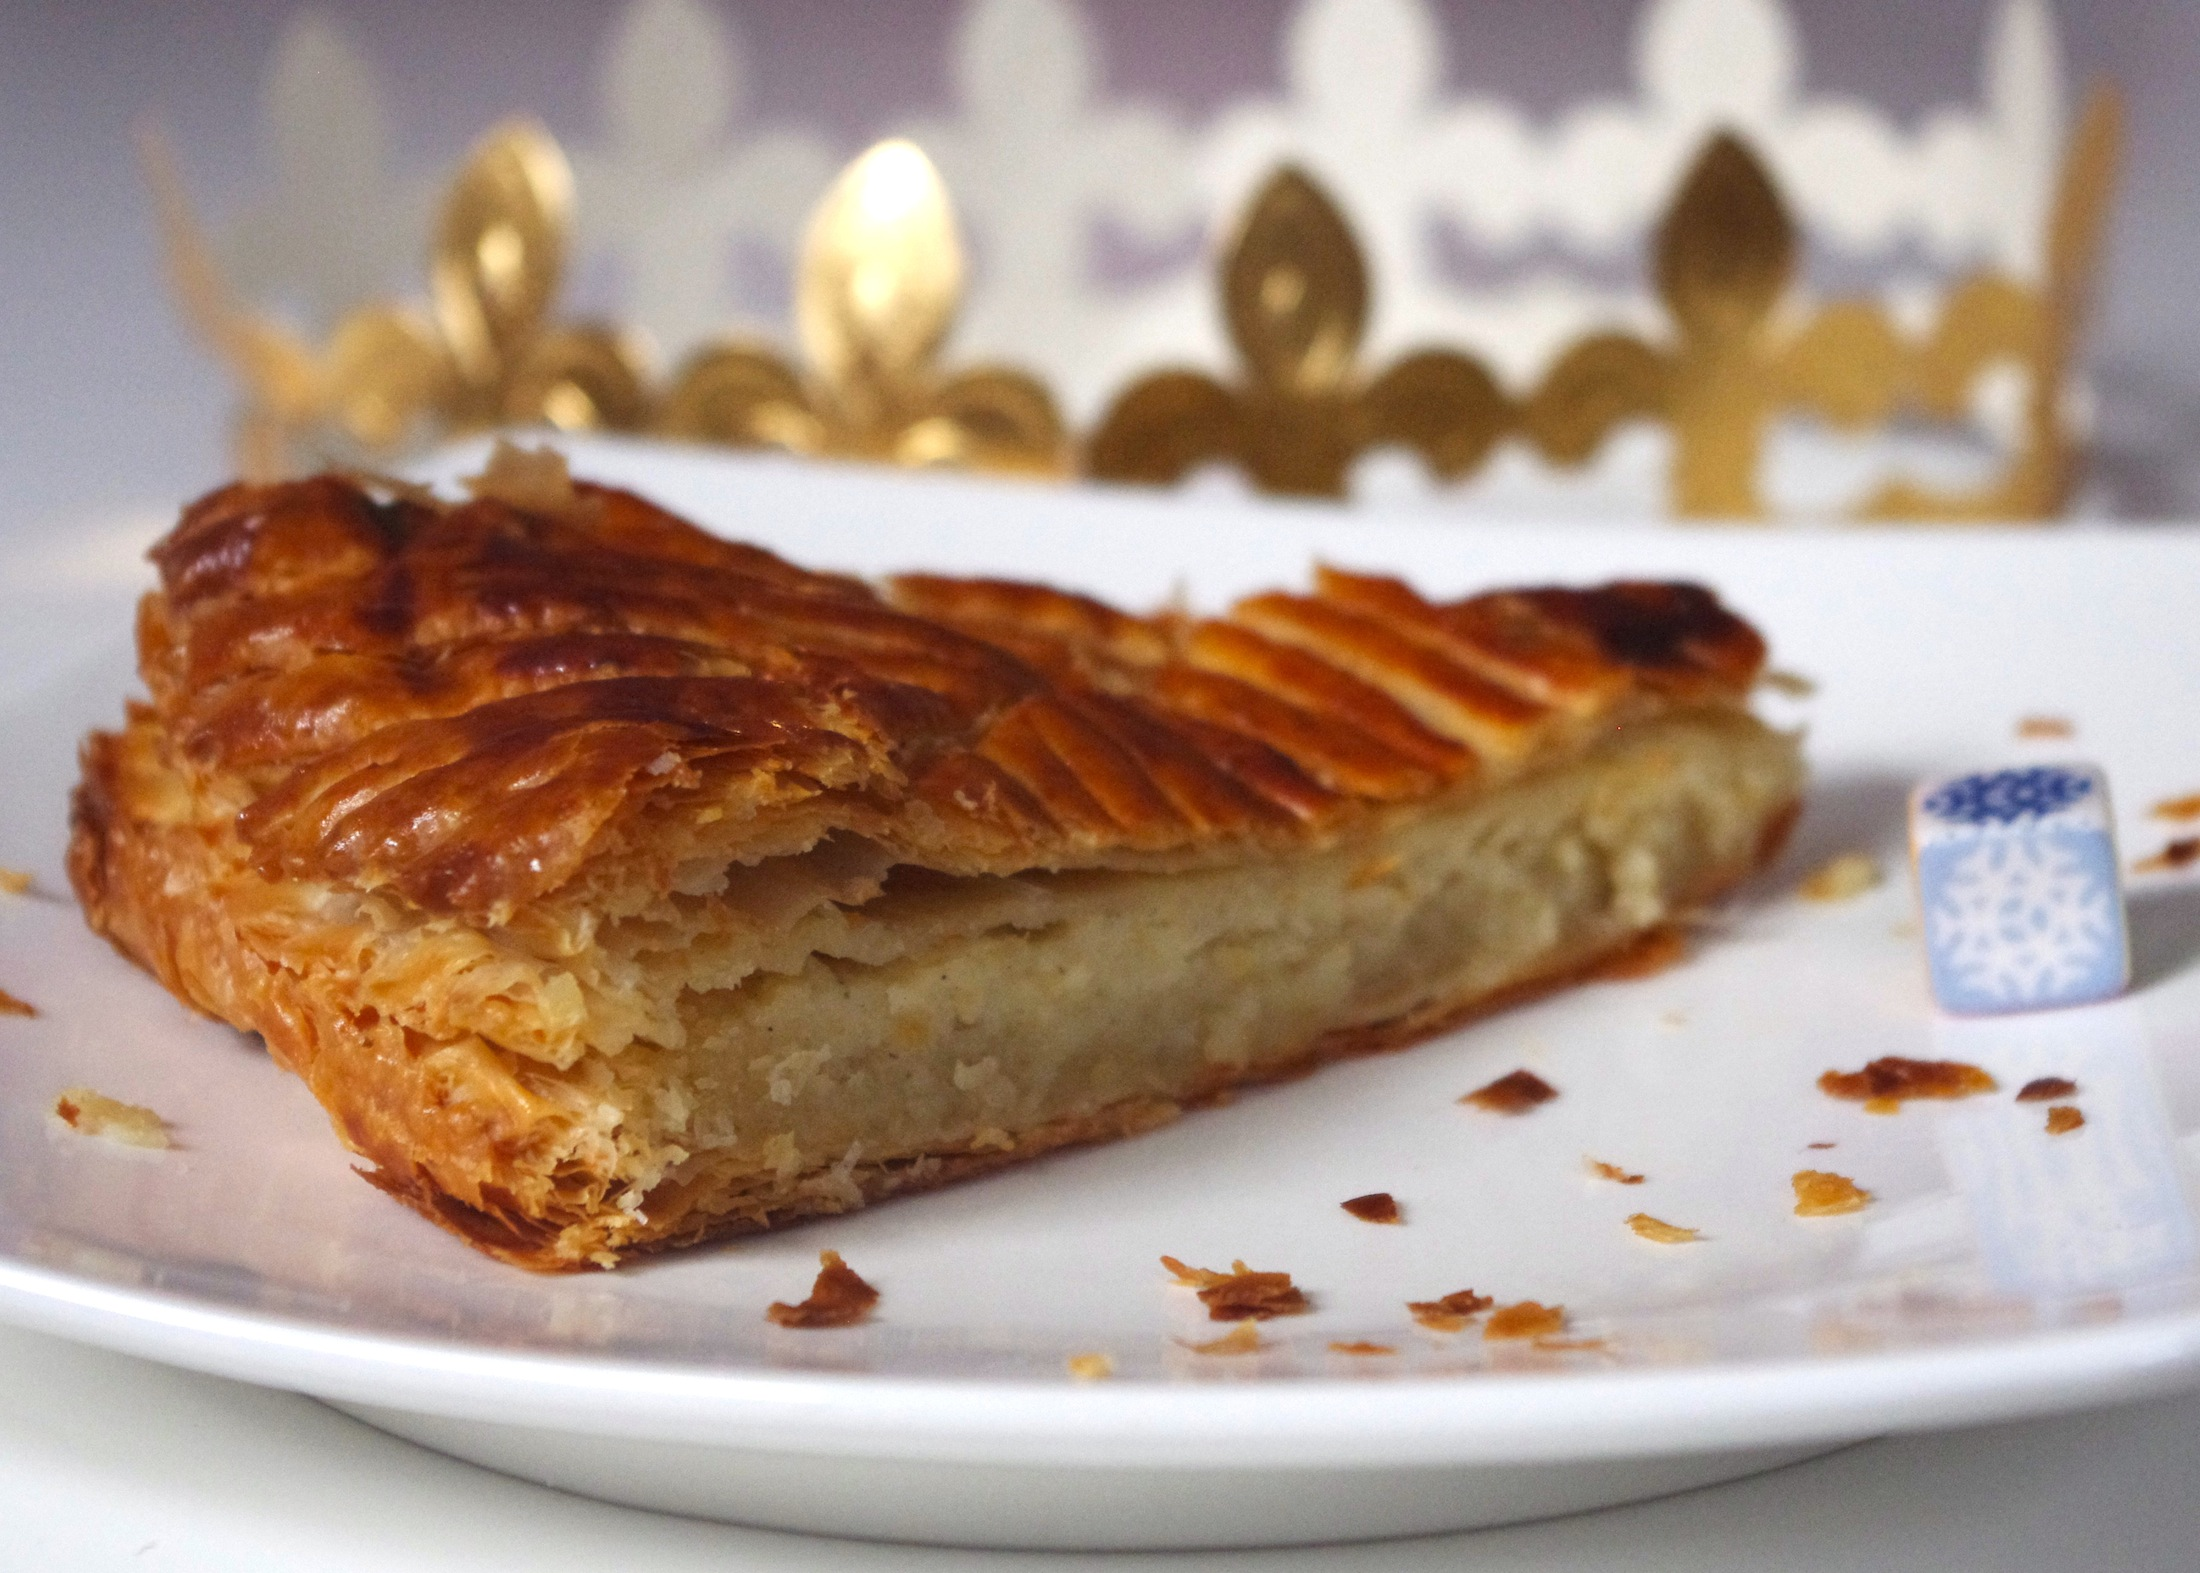 THE Galette des Rois  la frangipane (recette revisite + tuto)